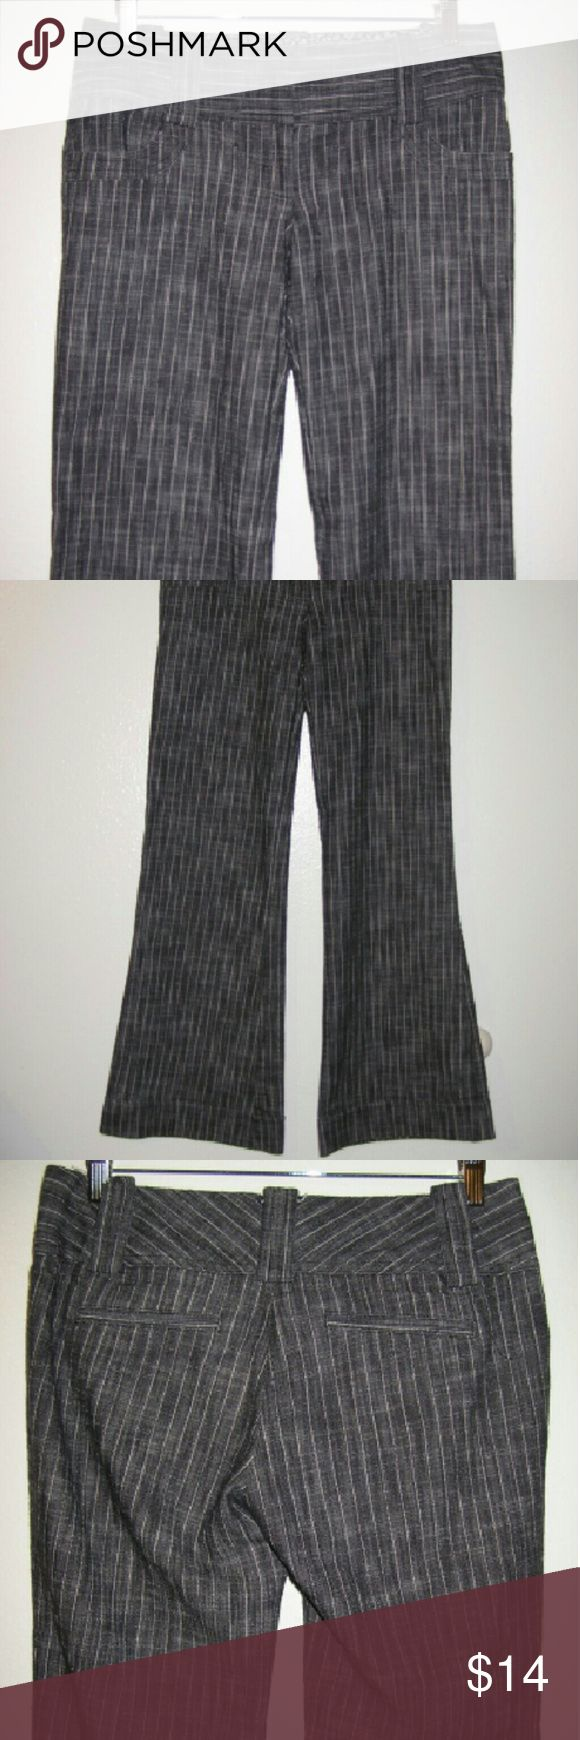 "Charlotte Russe career flare pant sz 7 gray stripe This pant has a flattering flare leg and a bit of stretch. Fabric us cotton, poly, spandex Not a stretch waist 32x31 with 7"" rise Charlotte Russe Pants Boot Cut & Flare"